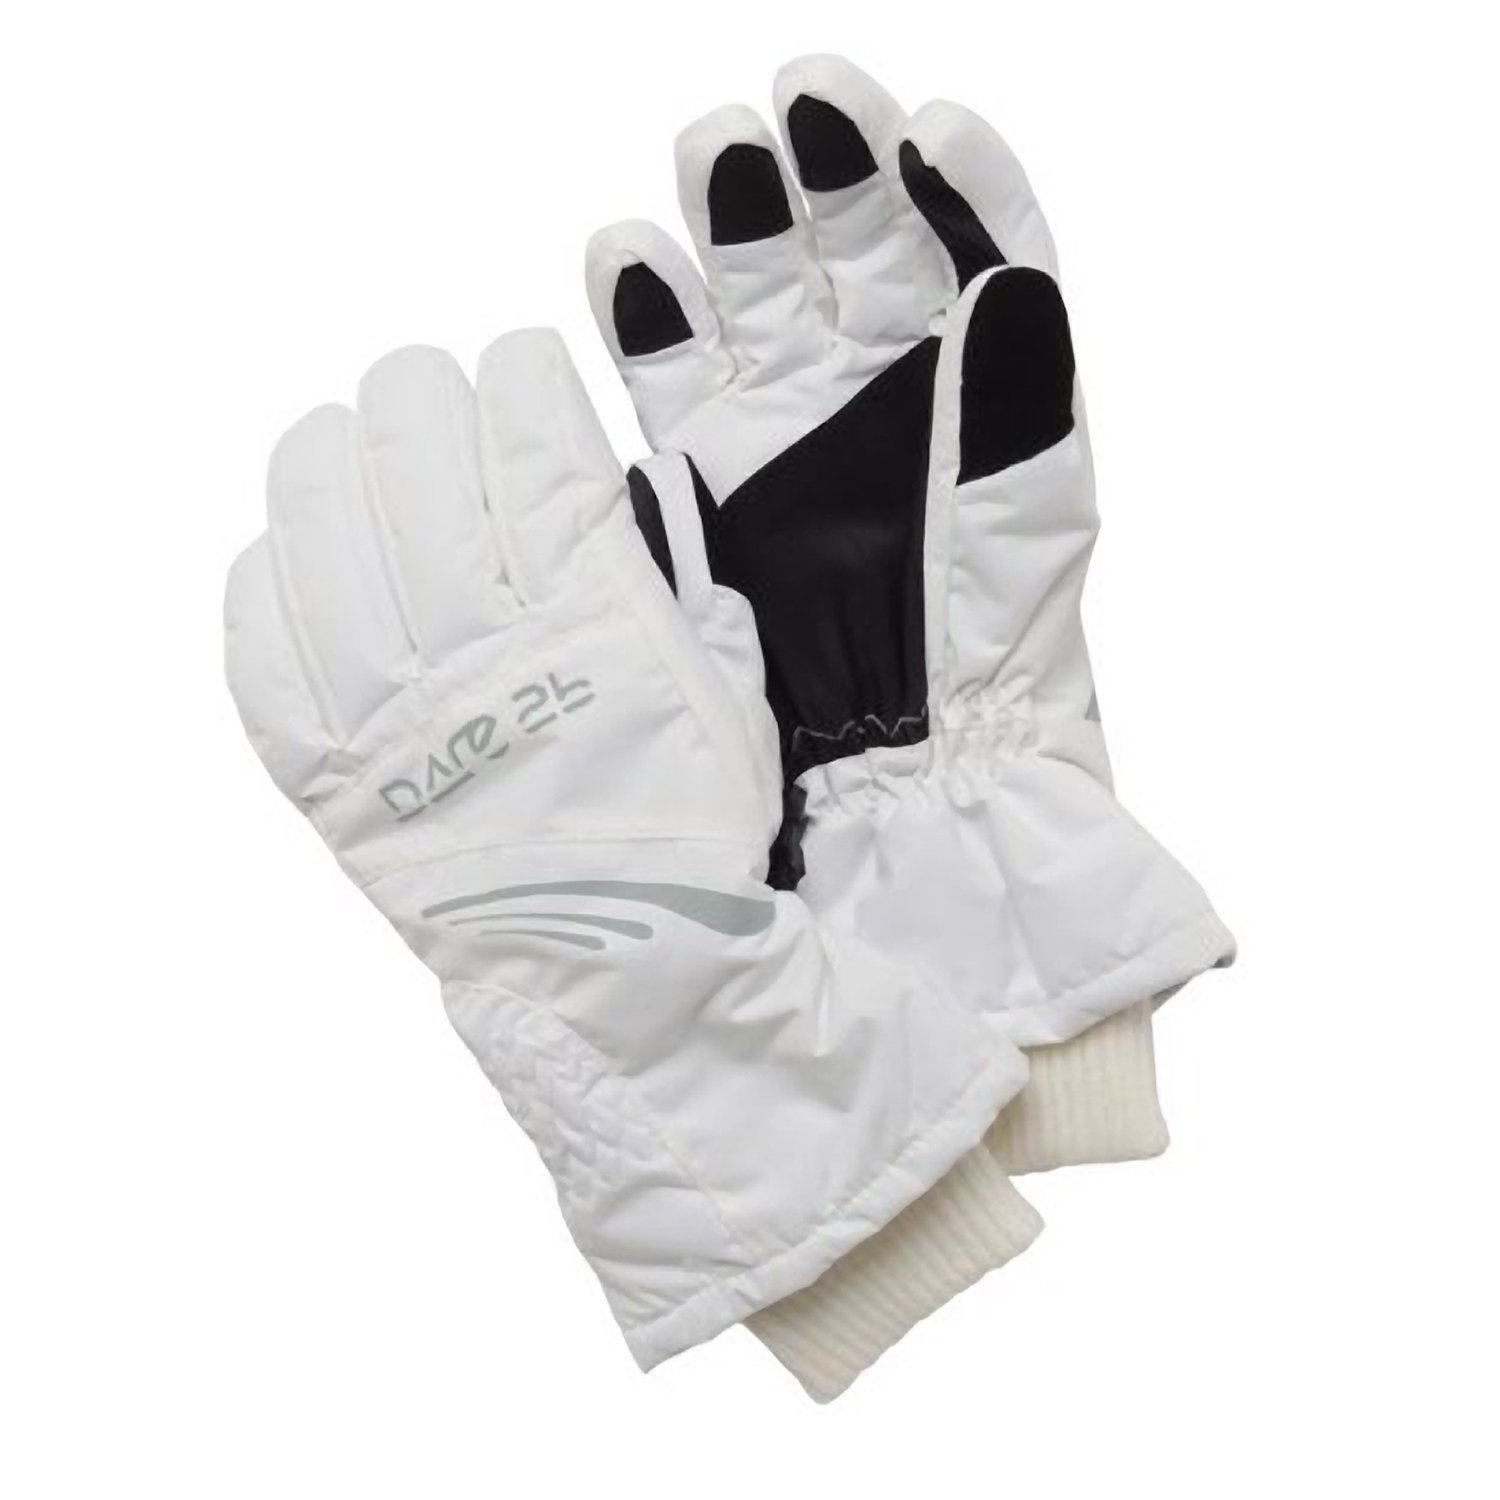 Dare 2b Swoop Glove Girls Dare2B Unisex Boys Kids White)